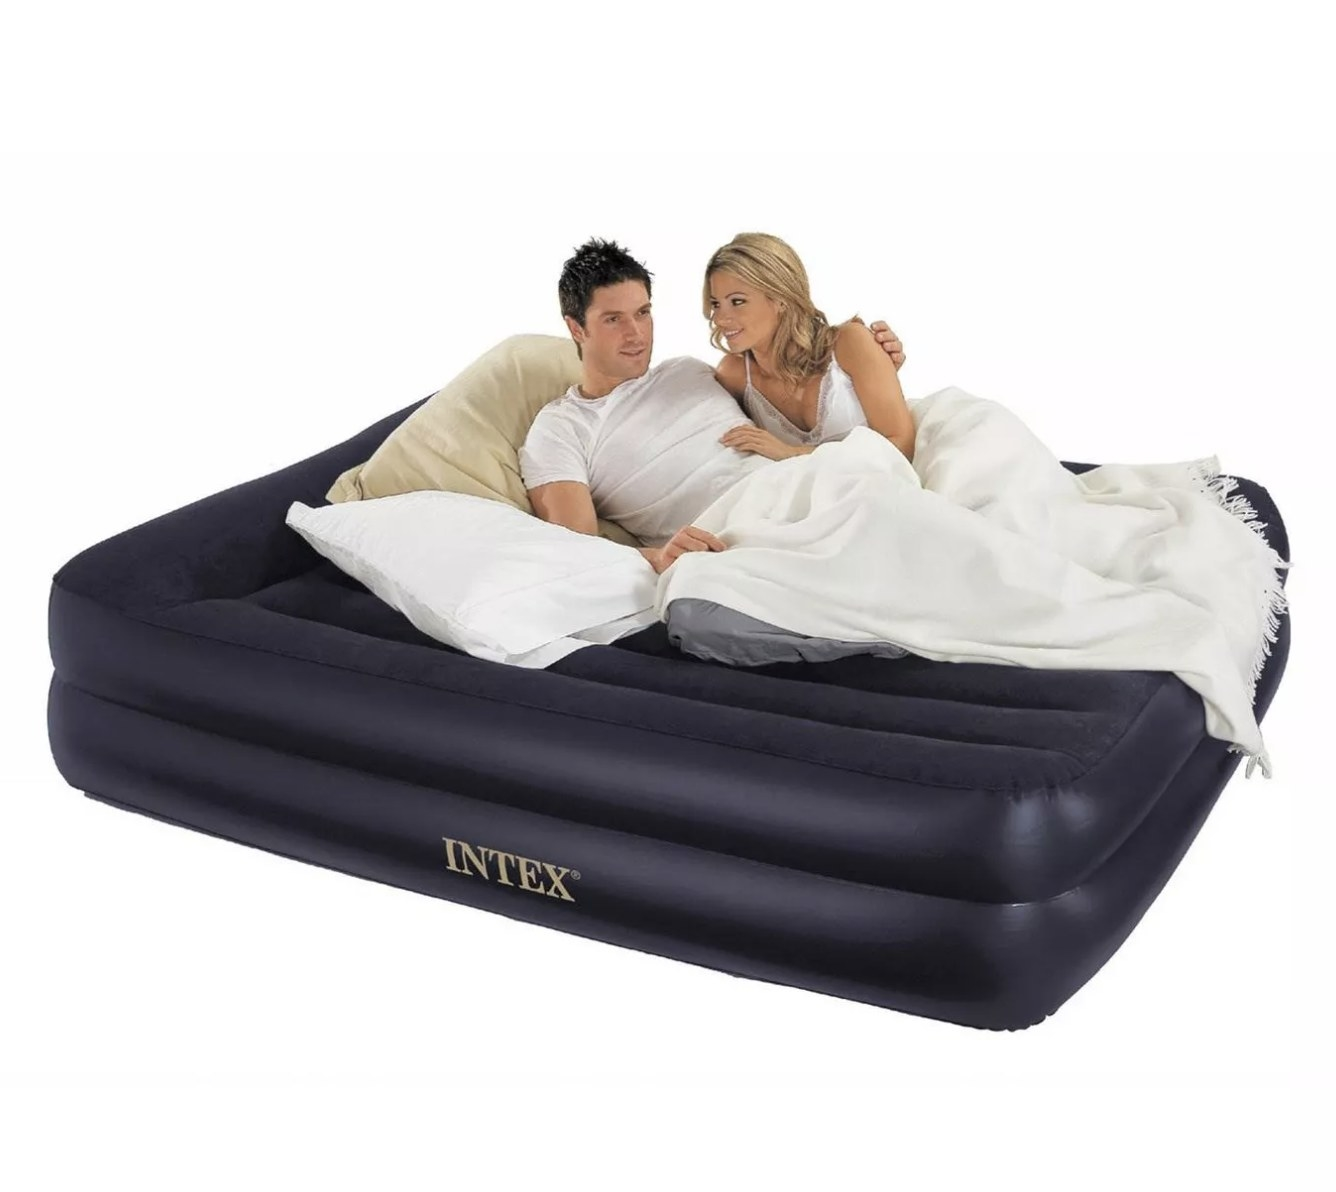 Two models laying on top of a black inflatable mattress with pillows and a blanket